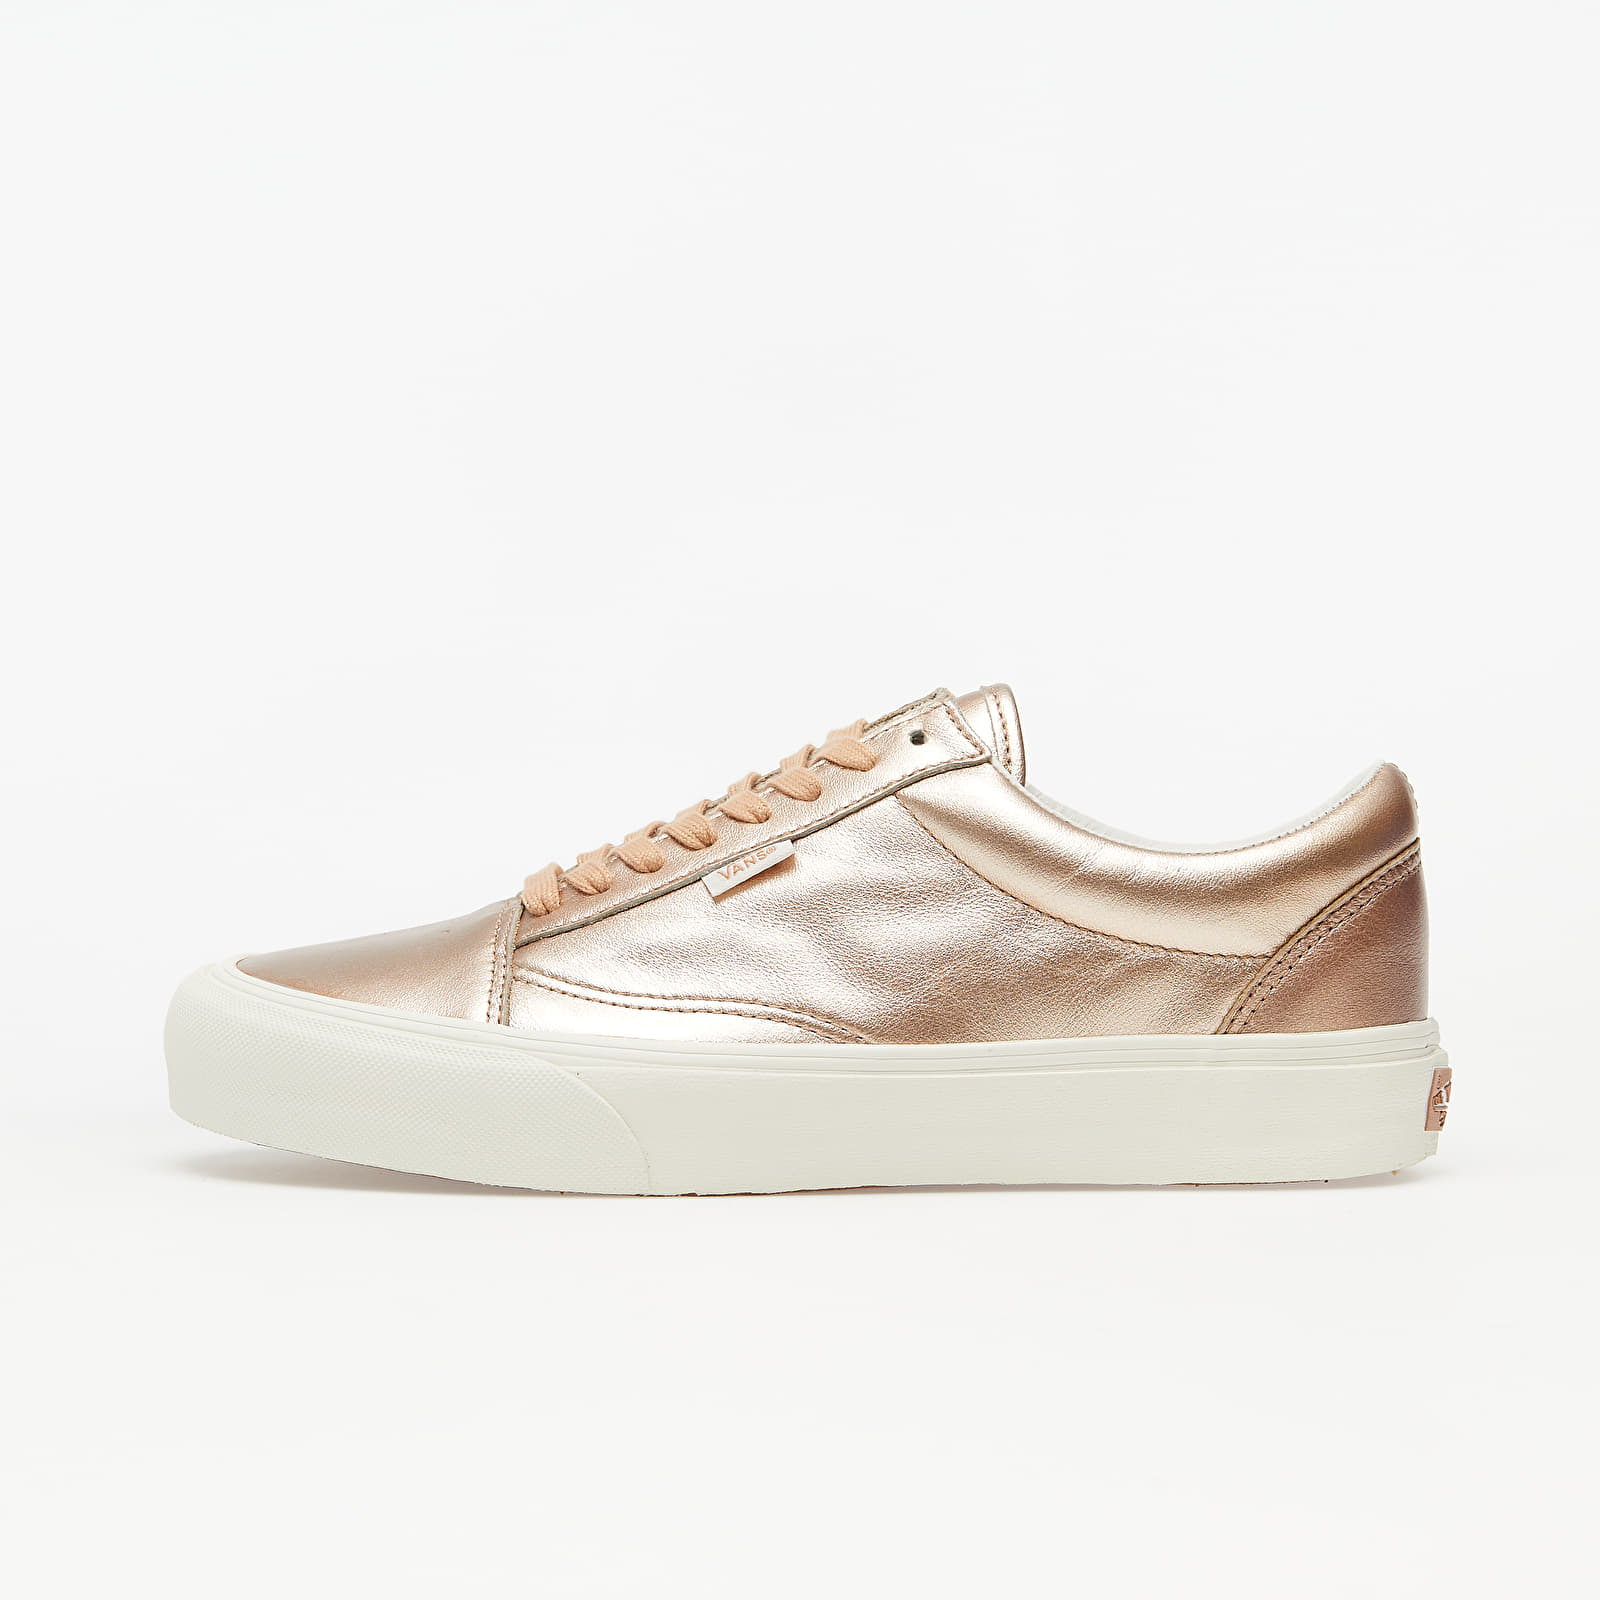 Vans Old Skool NS VLT LX (Metal) Rose Gold VN0A4UVQ25P1